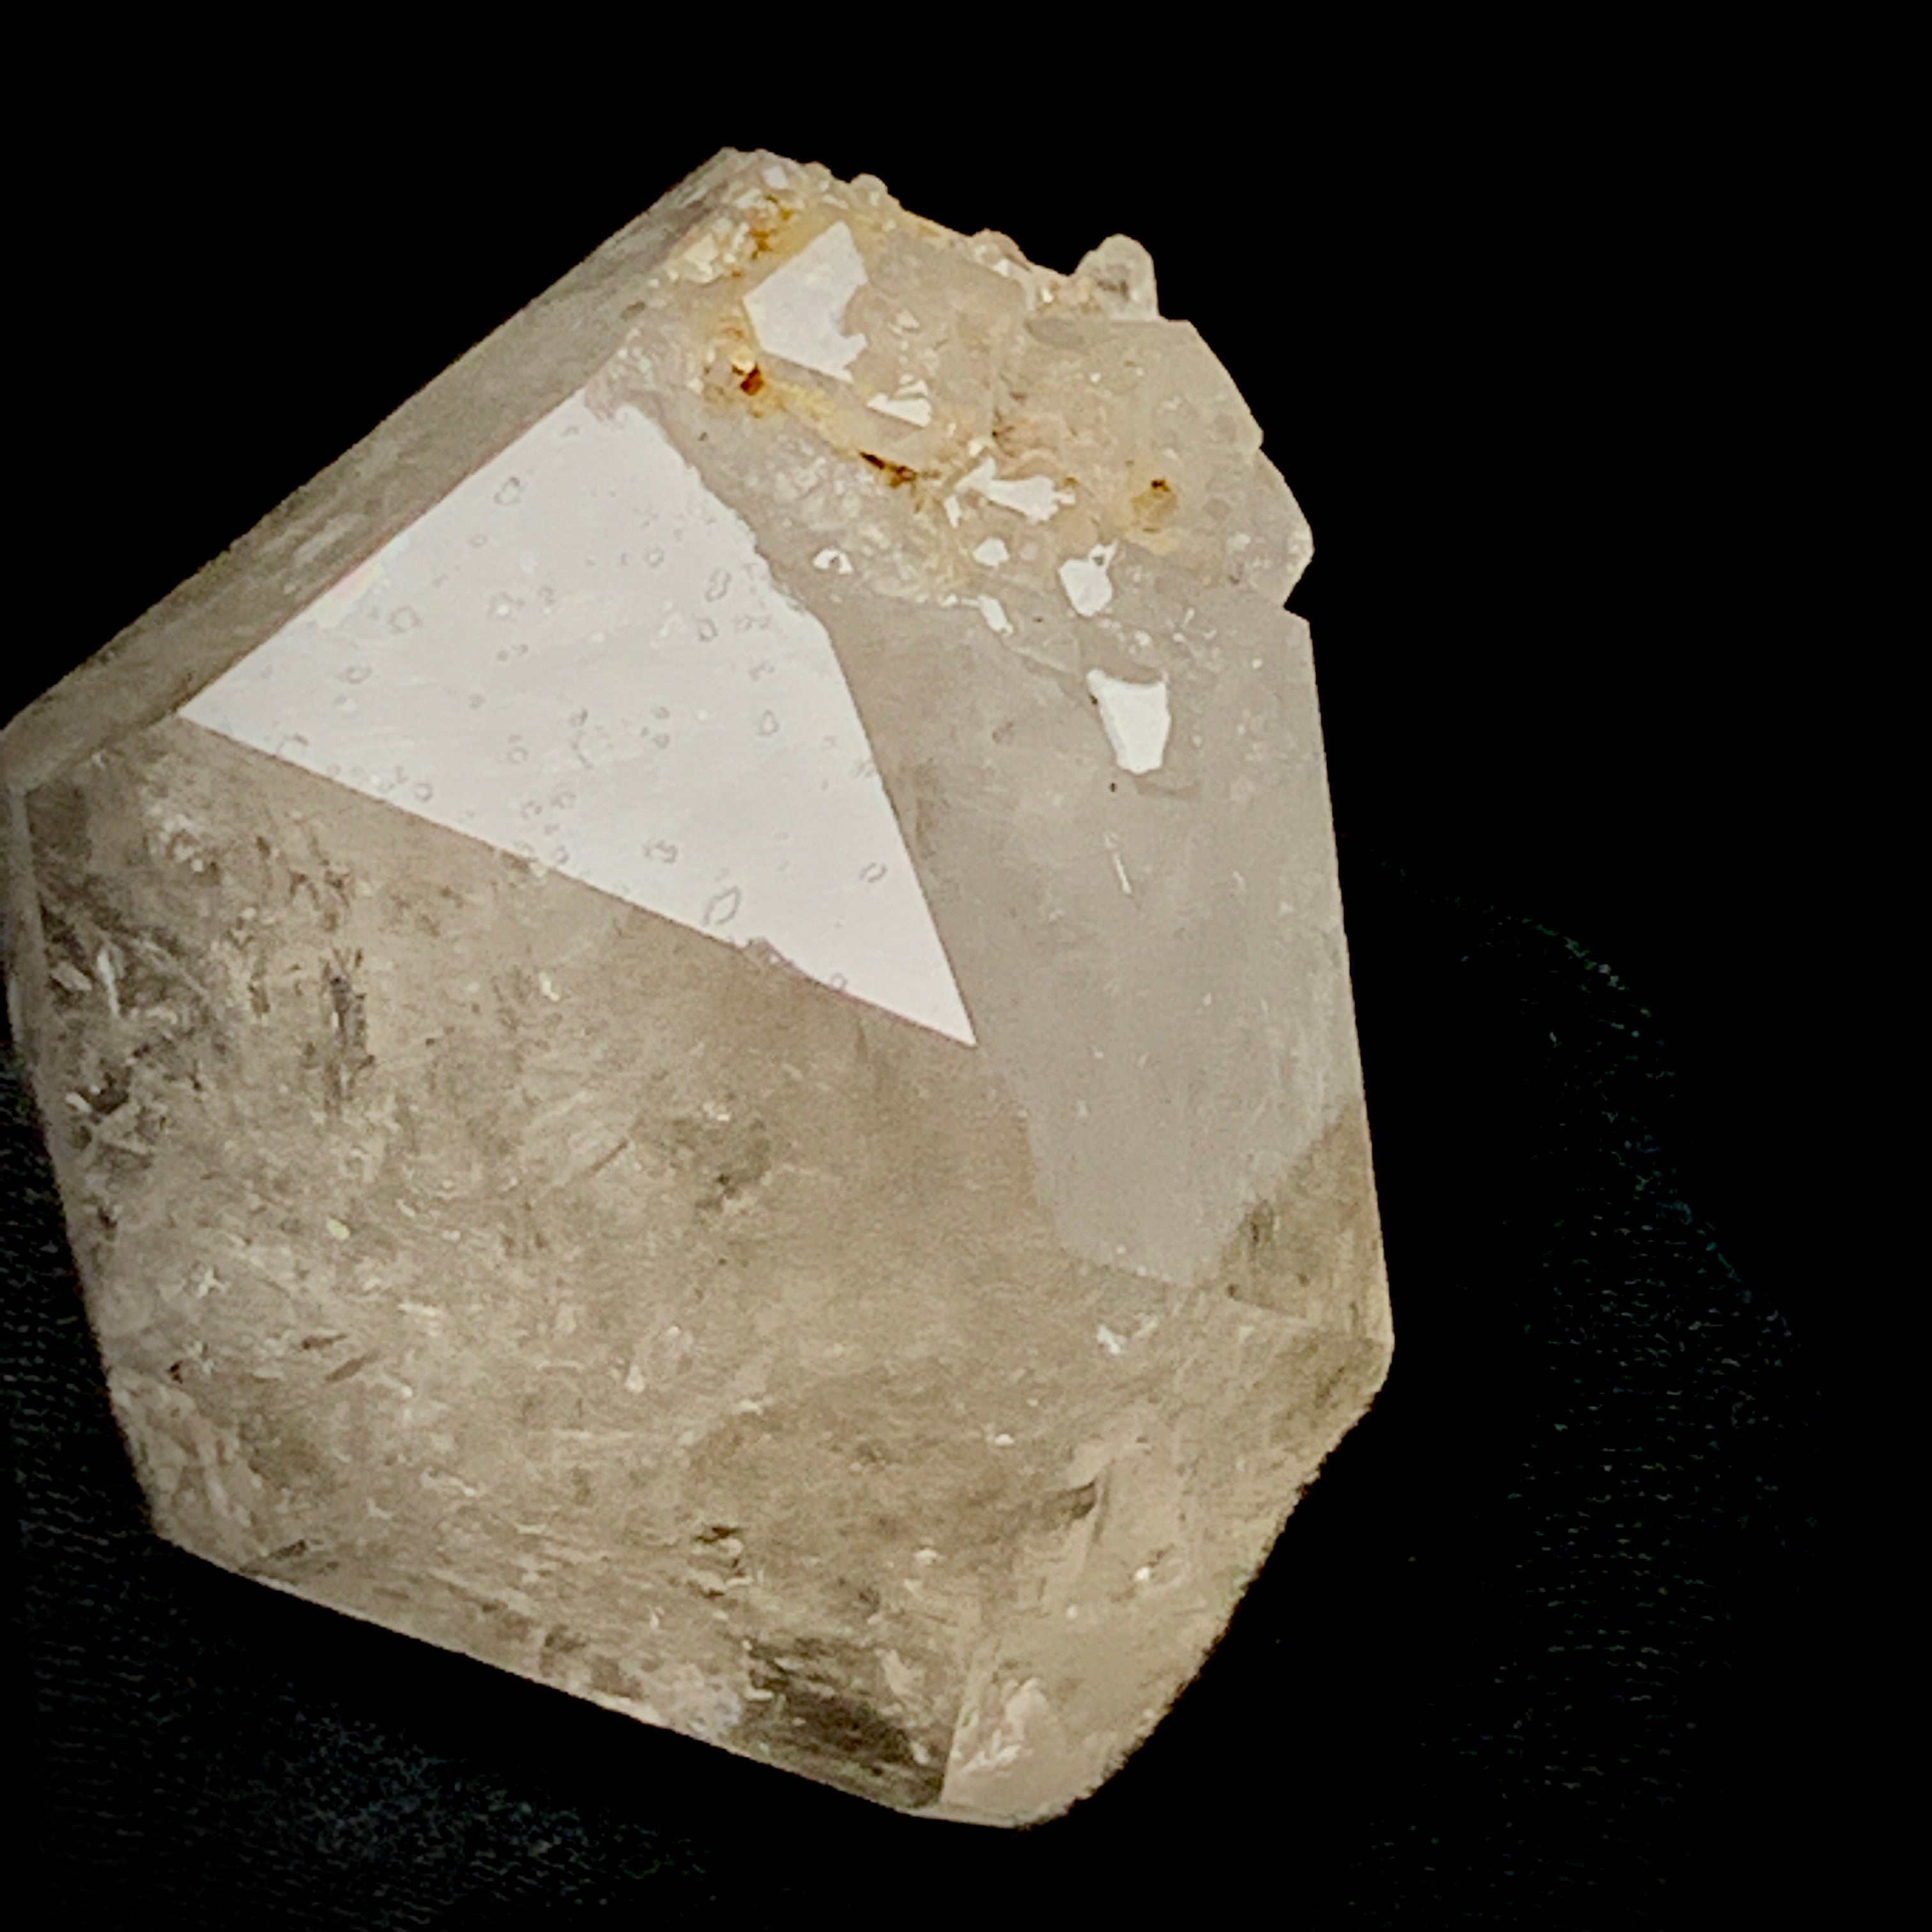 Double Terminated Isis With Moving Bubble-Fenster quartz with fluid inclusions-The Lemurian Rose